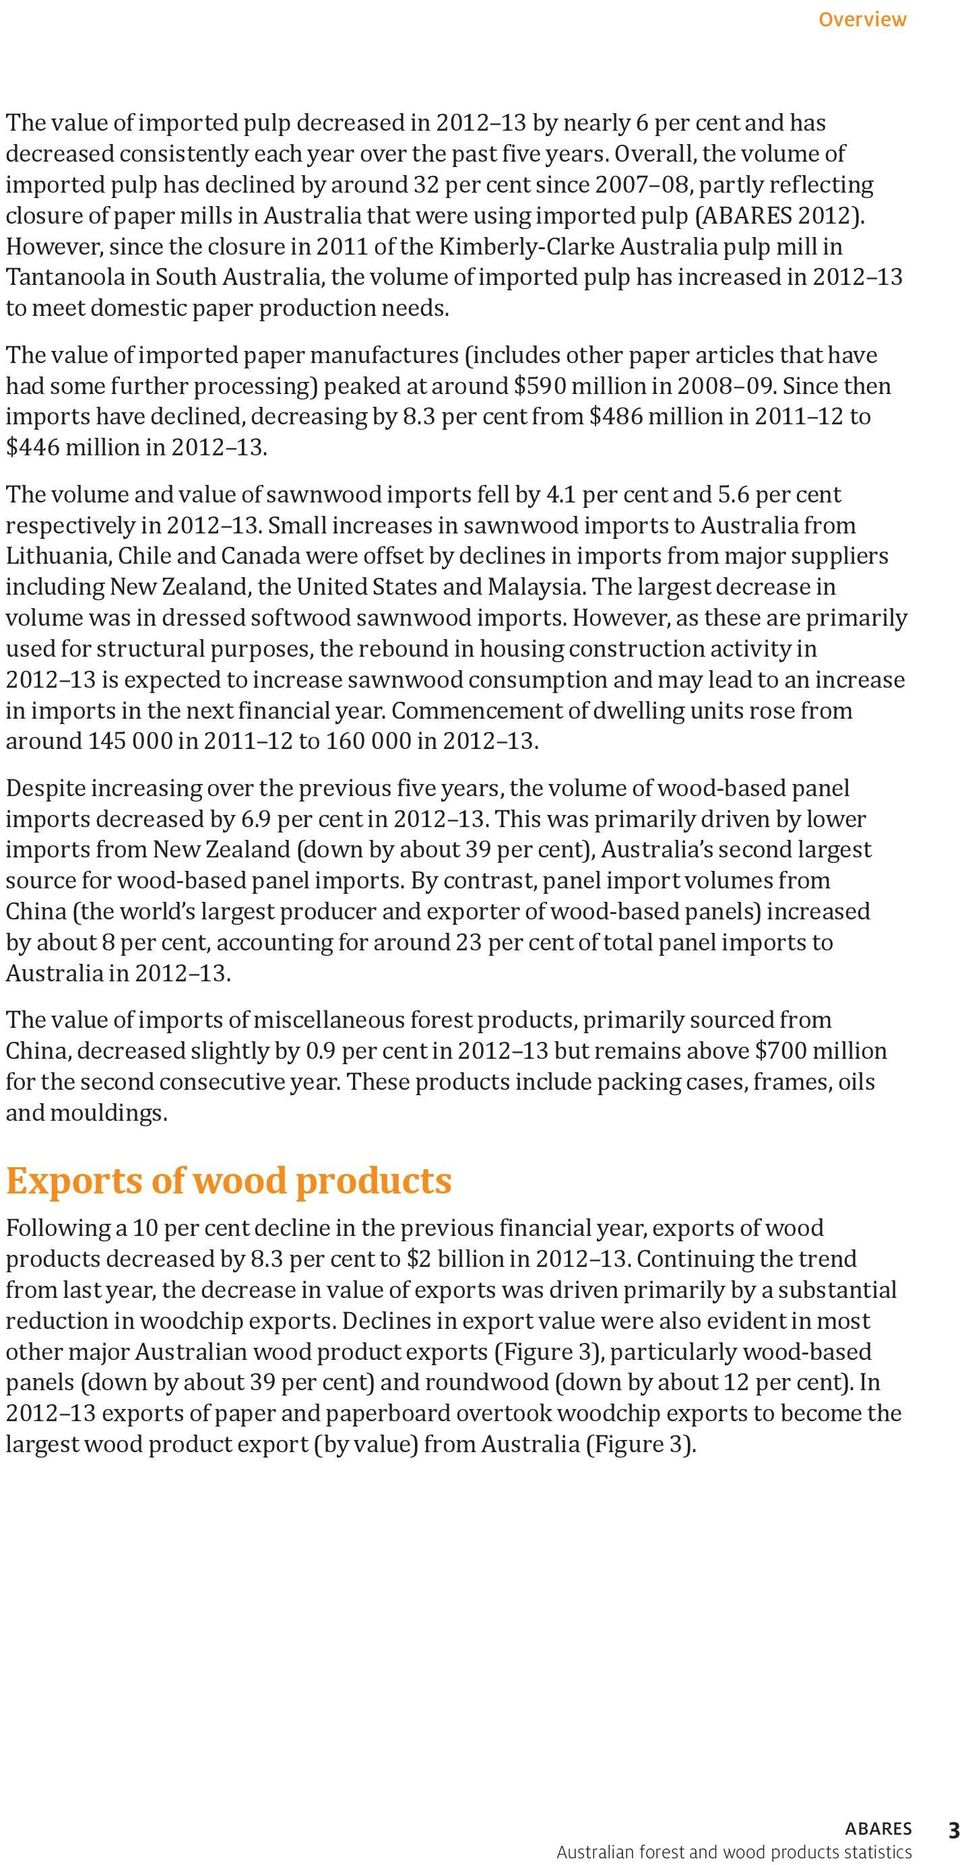 However, since the closure in 2011 of the Kimberly-Clarke Australia pulp mill in Tantanoola in South Australia, the volume of imported pulp has increased in 2012 13 to meet domestic paper production